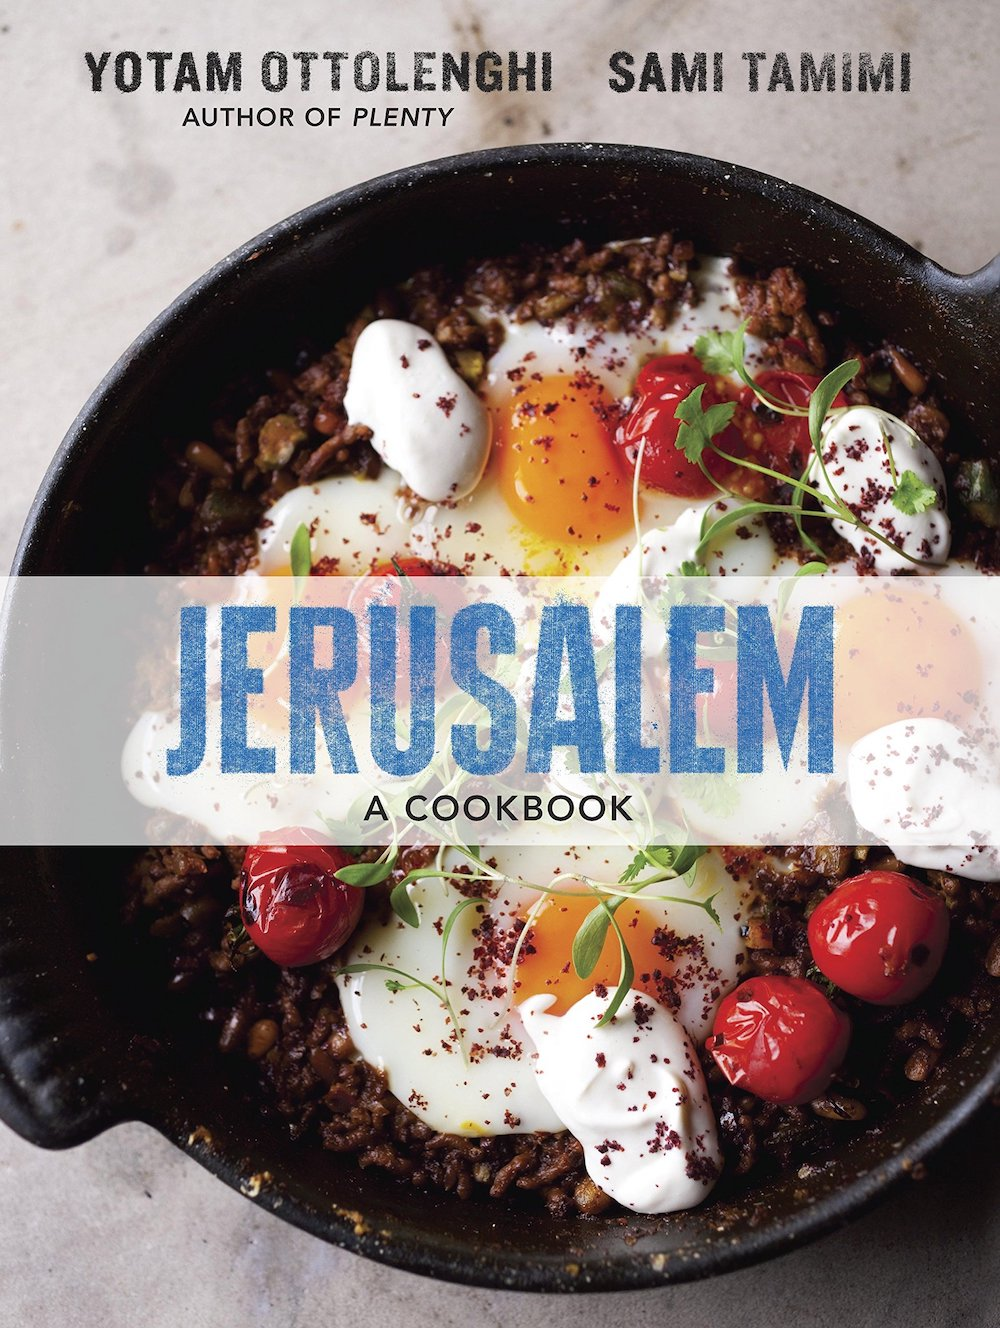 Jerusalem: A Cookbook by Yotam Ottolenghi, cook book ideas